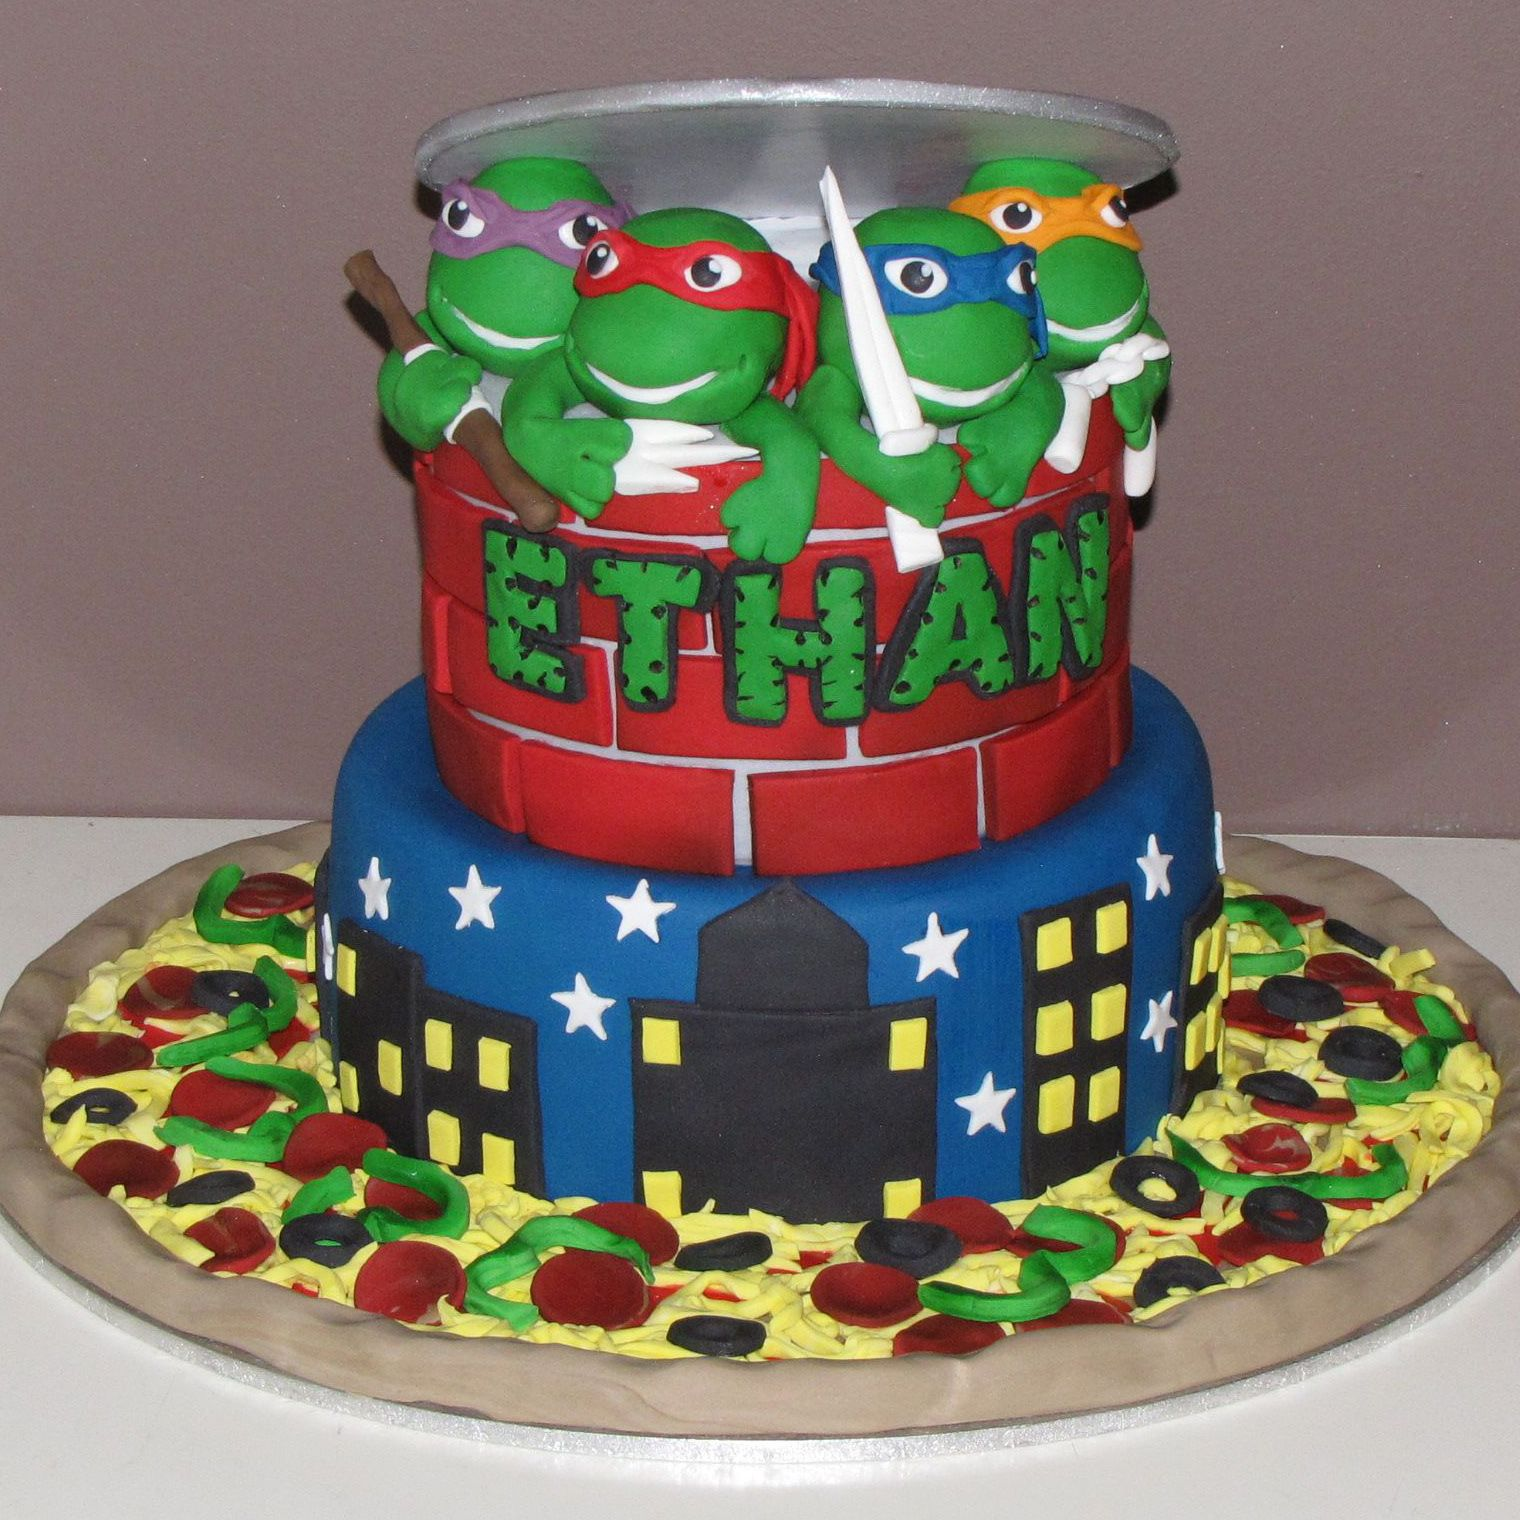 Pin By Linda K On Birthday Cakes Tmnt Cake Cake Ninja